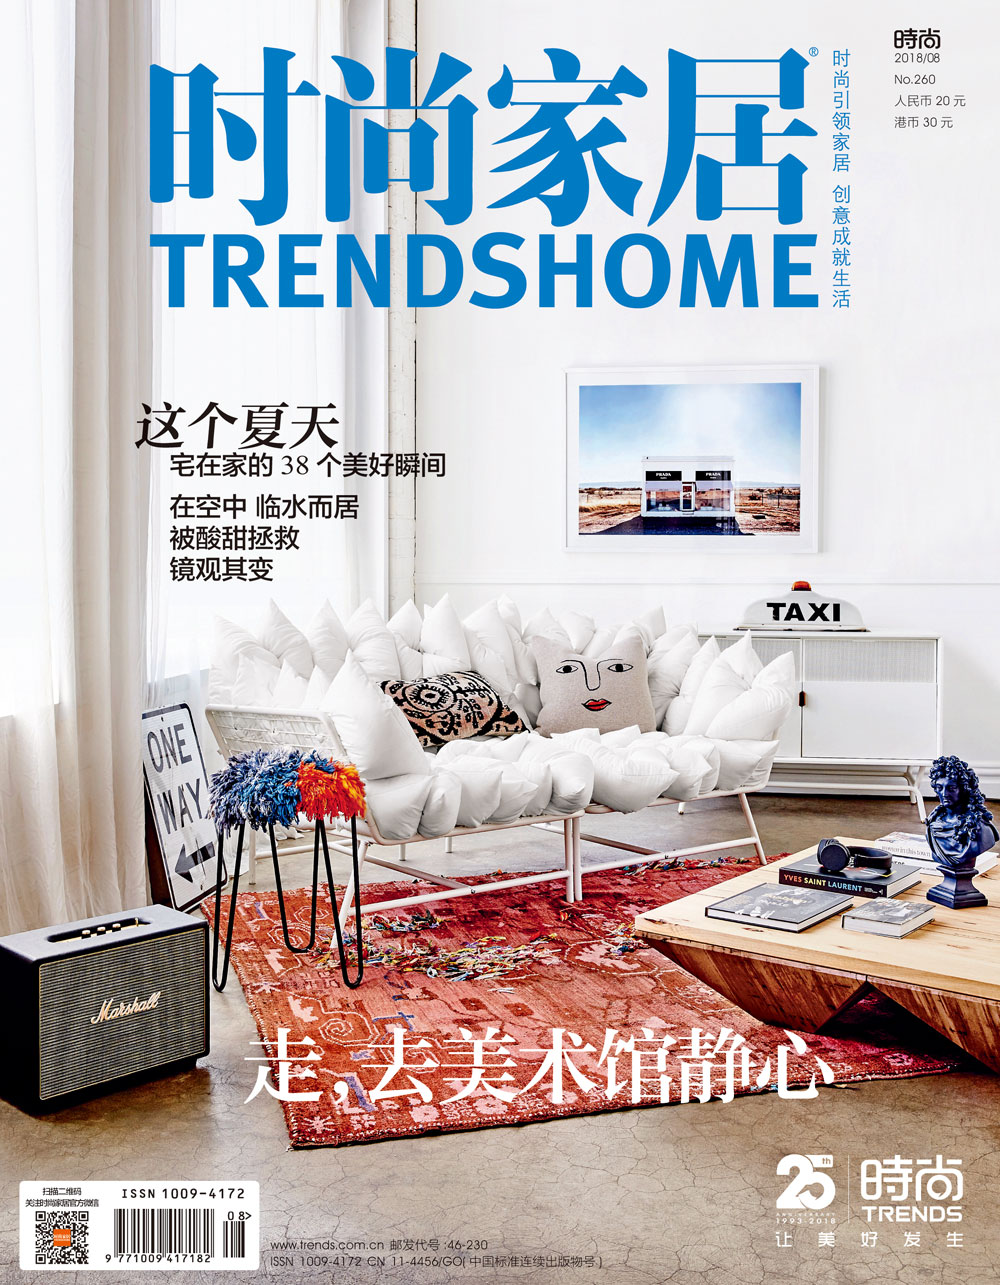 Trend Home Aug.2018